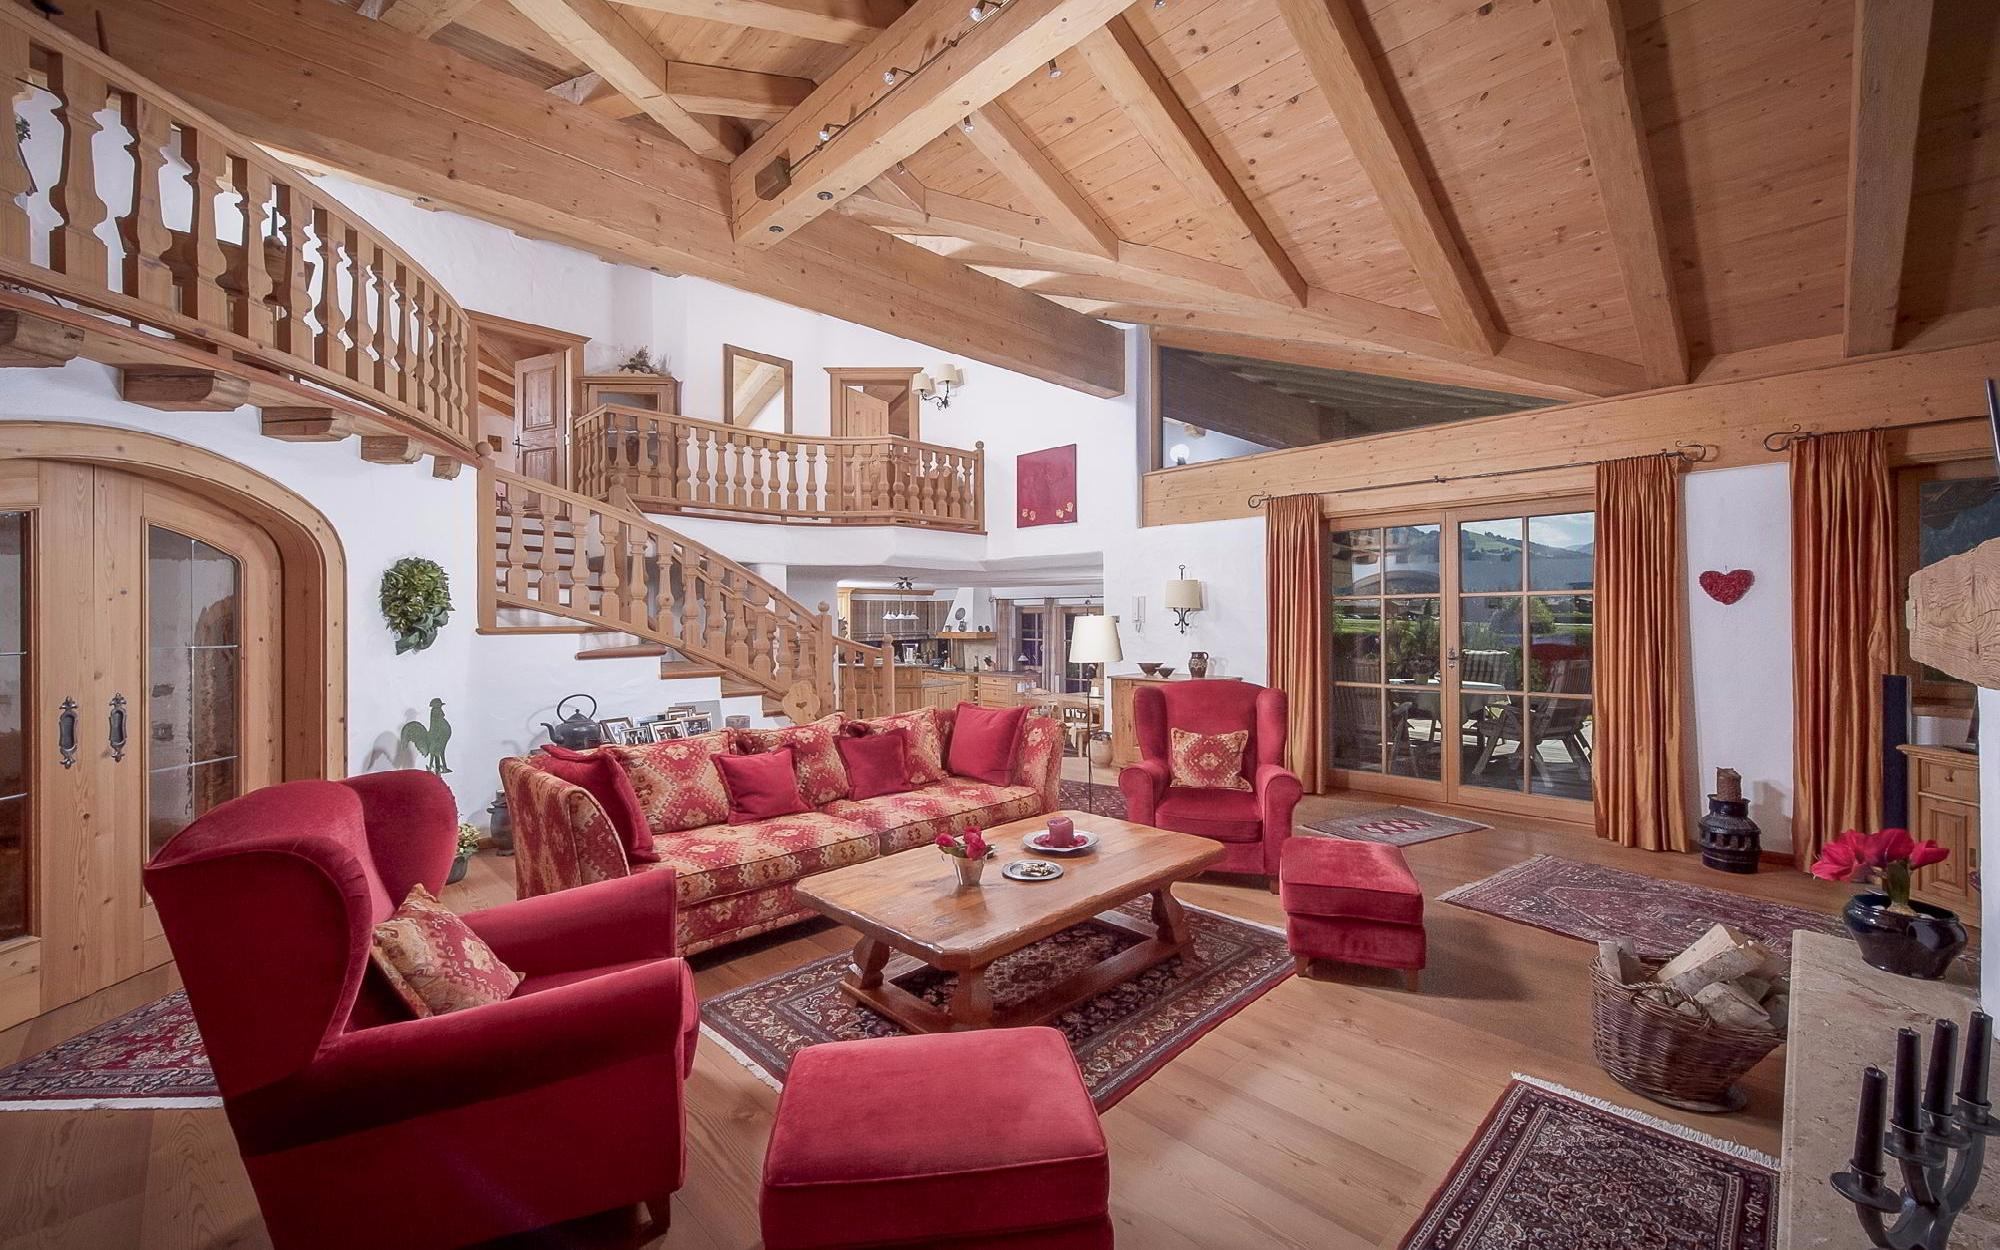 Quality country house in Tyrolean style close to Kitzbuehel for Sale - Tirol - Austria